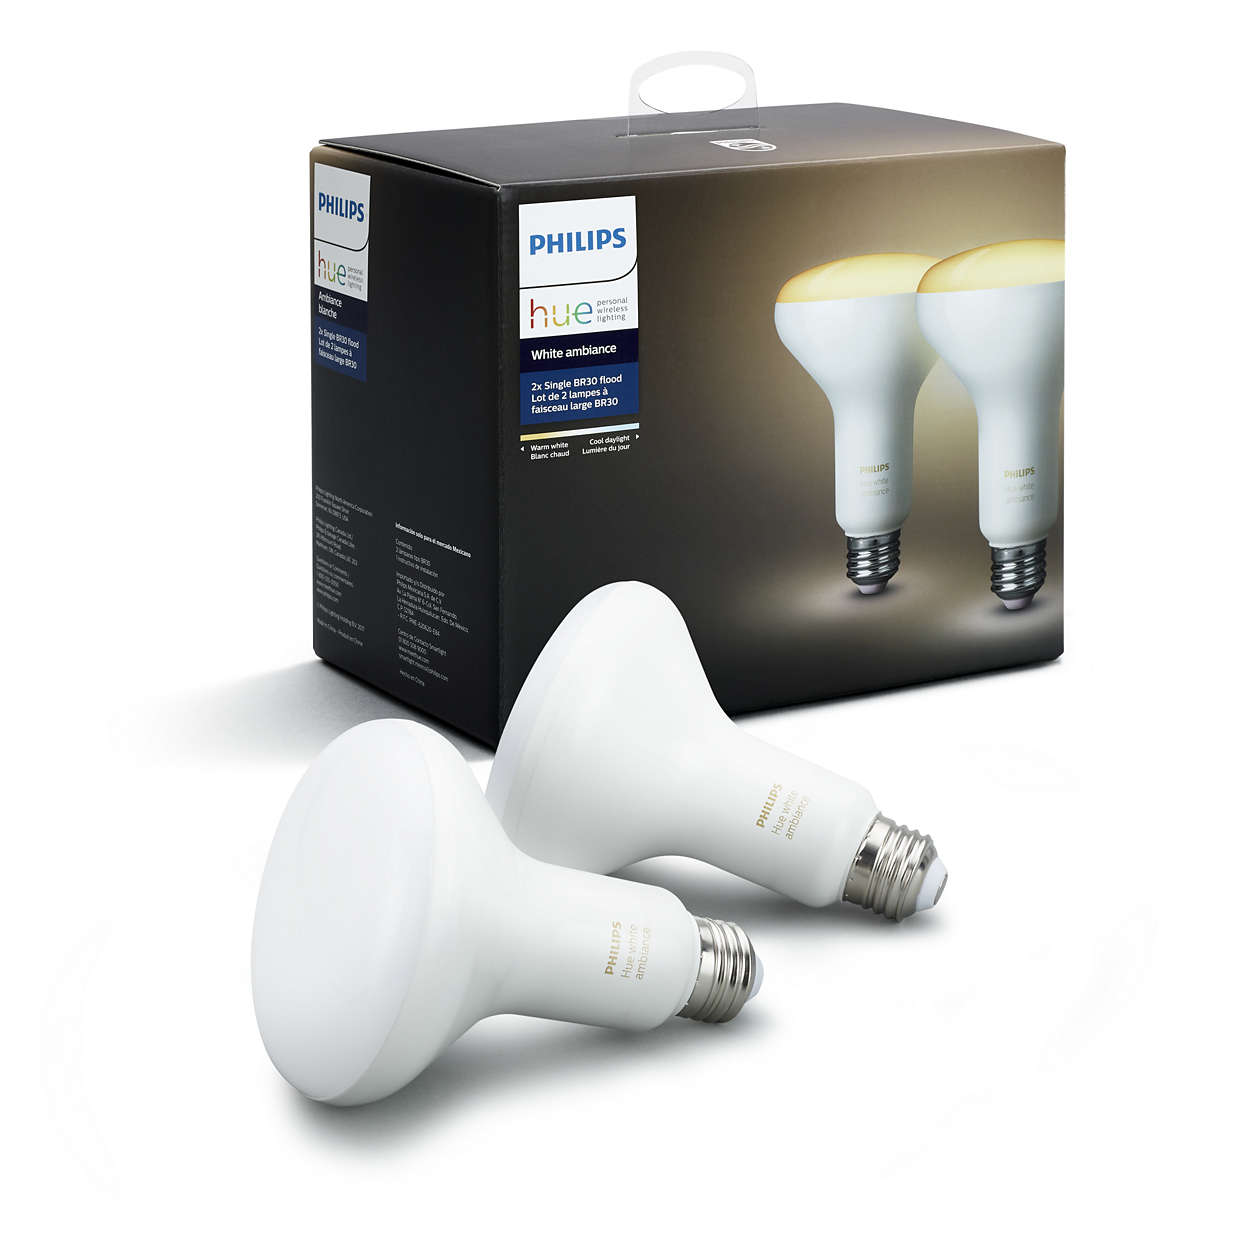 Philips Hue White Ambiance Smart BR30 Light Bulb, 65W Equivalent, Hub Required, 2 Bulbs